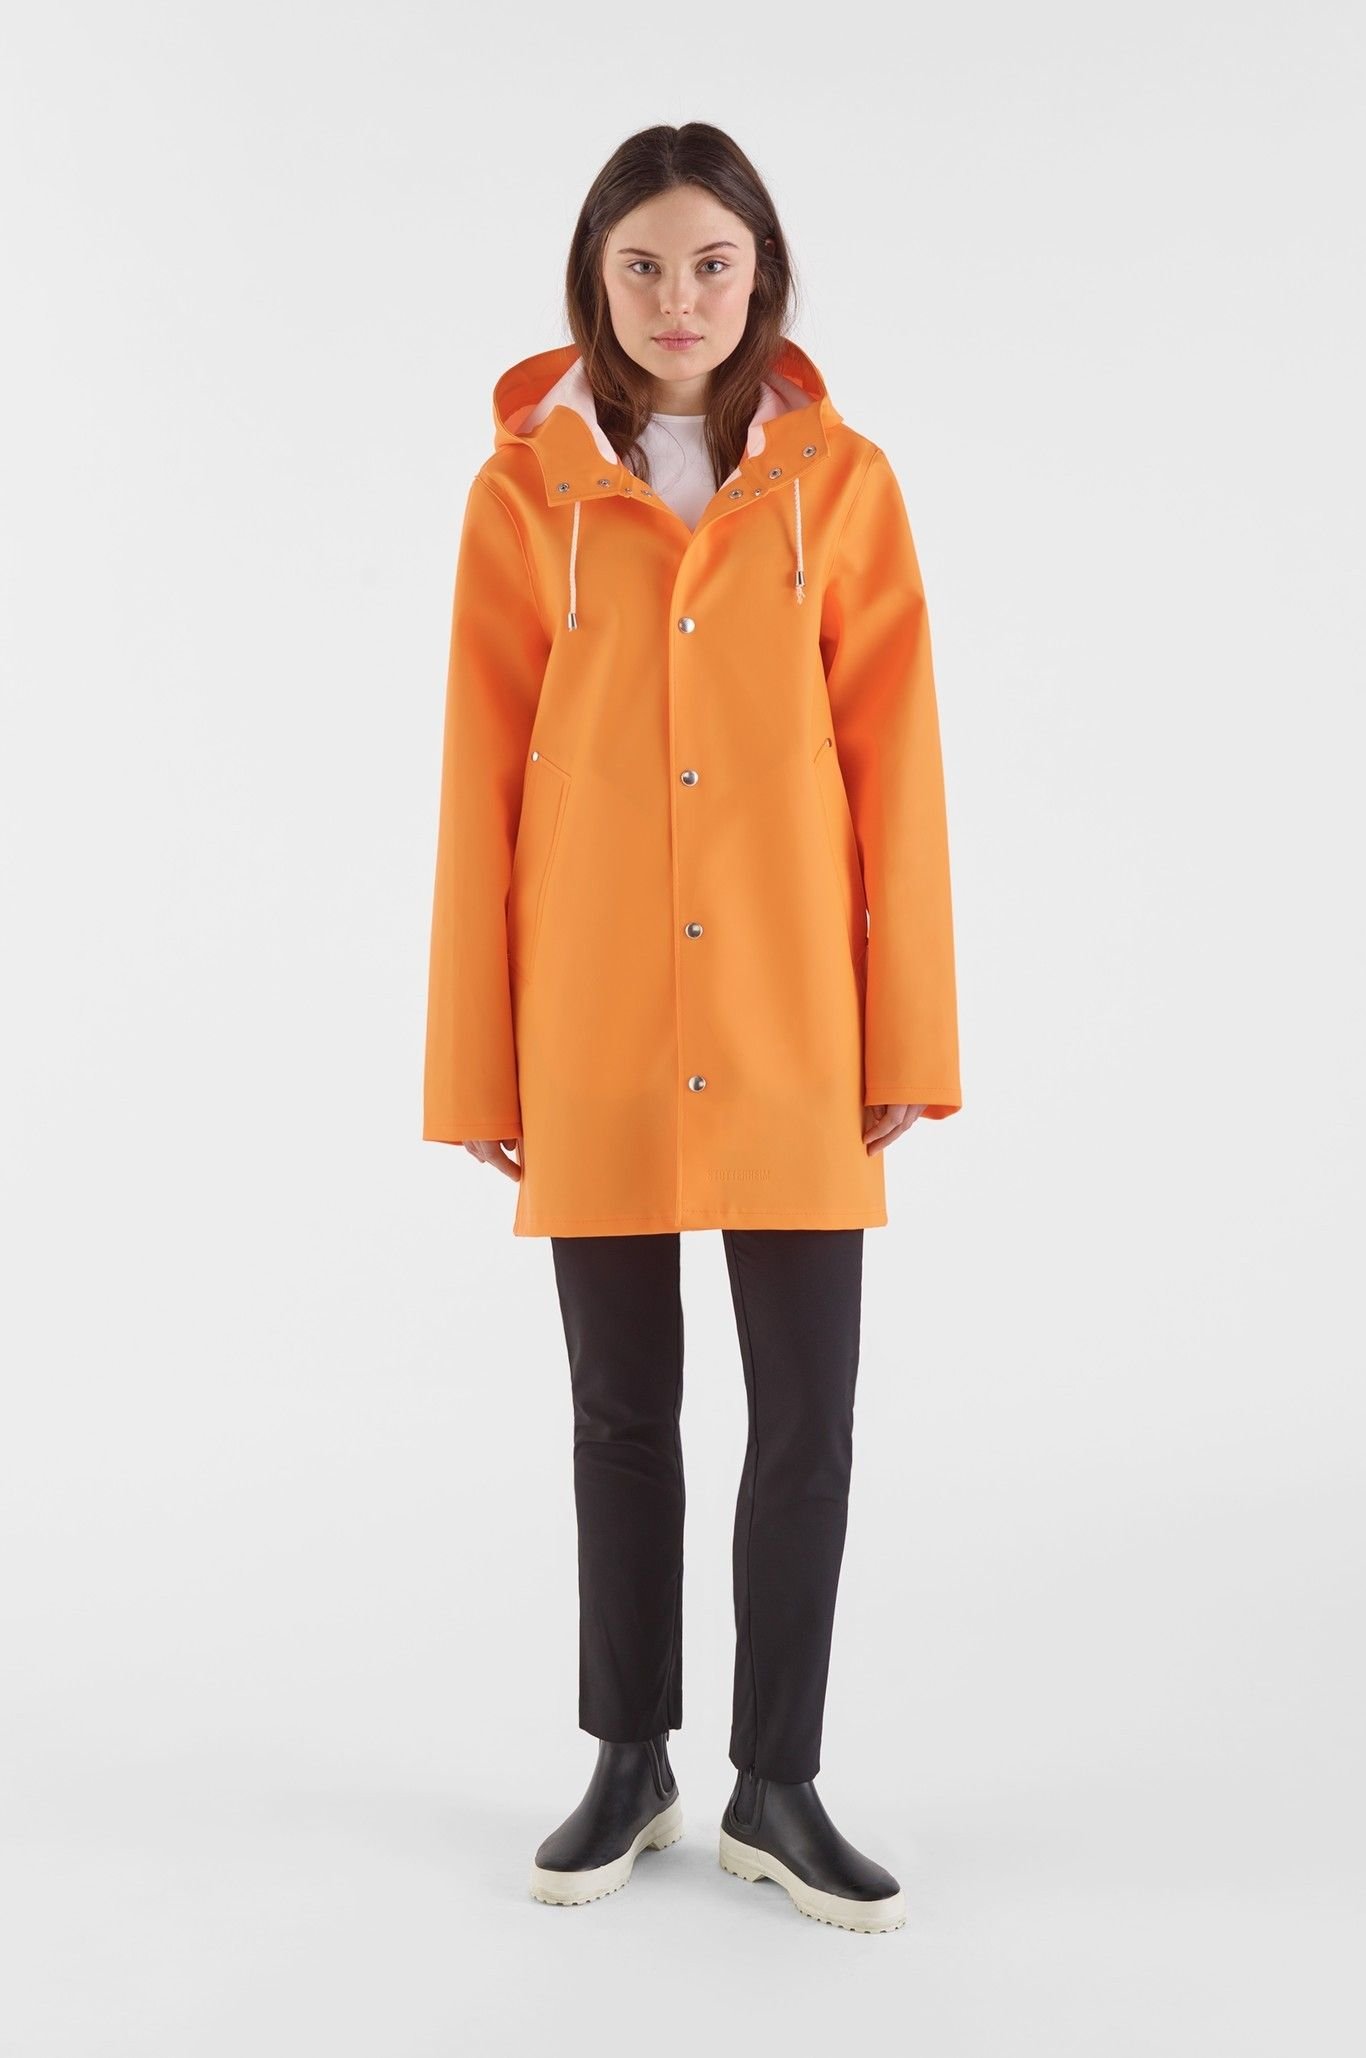 Stockholm orange sale man summer sale u stutterheim raincoats